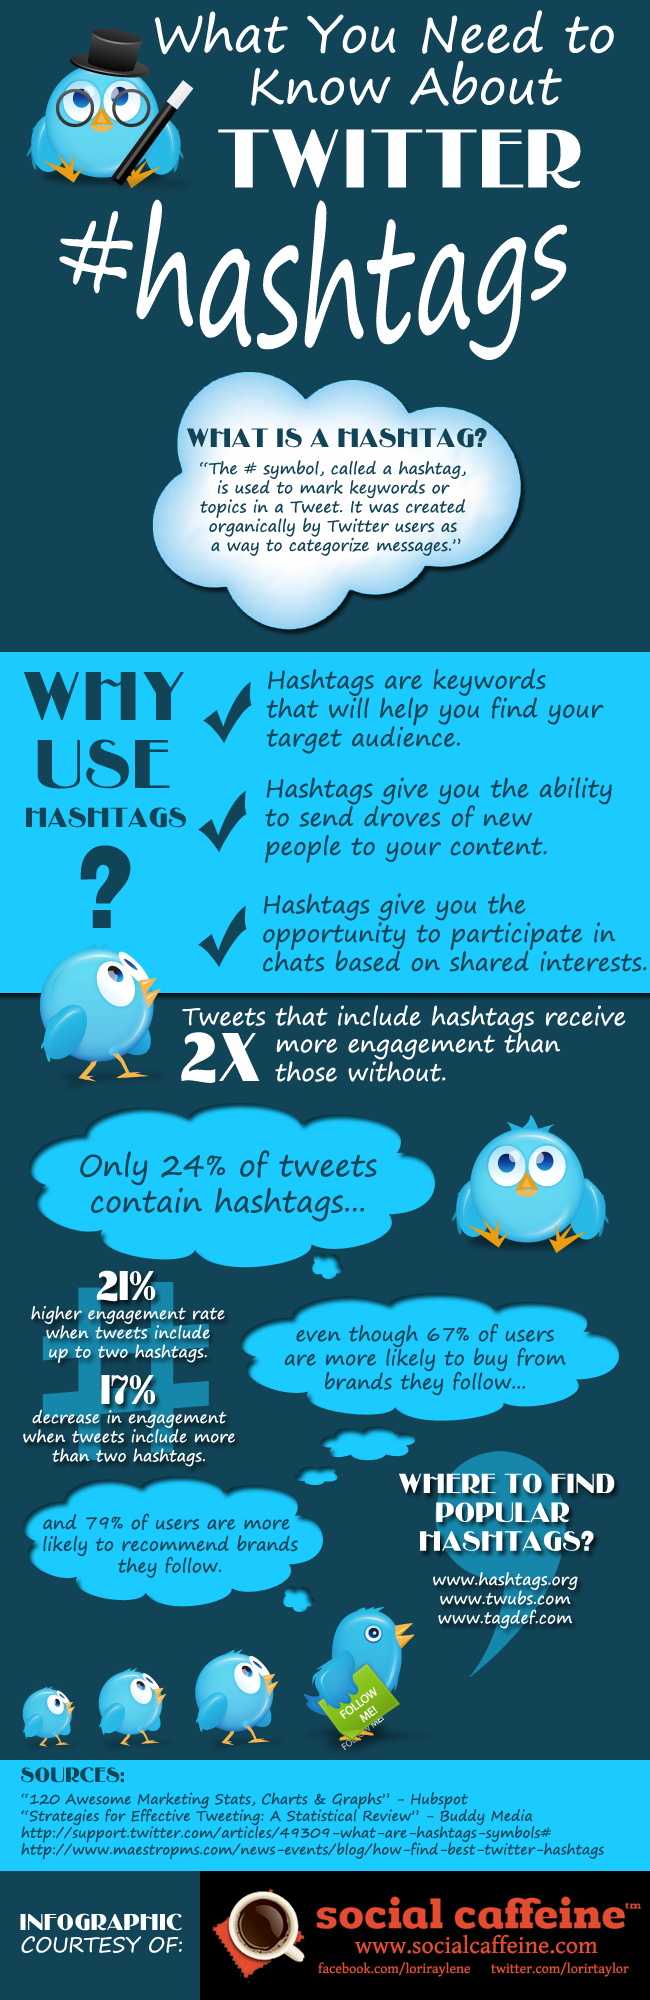 twitter-hashtag-infographic[1]